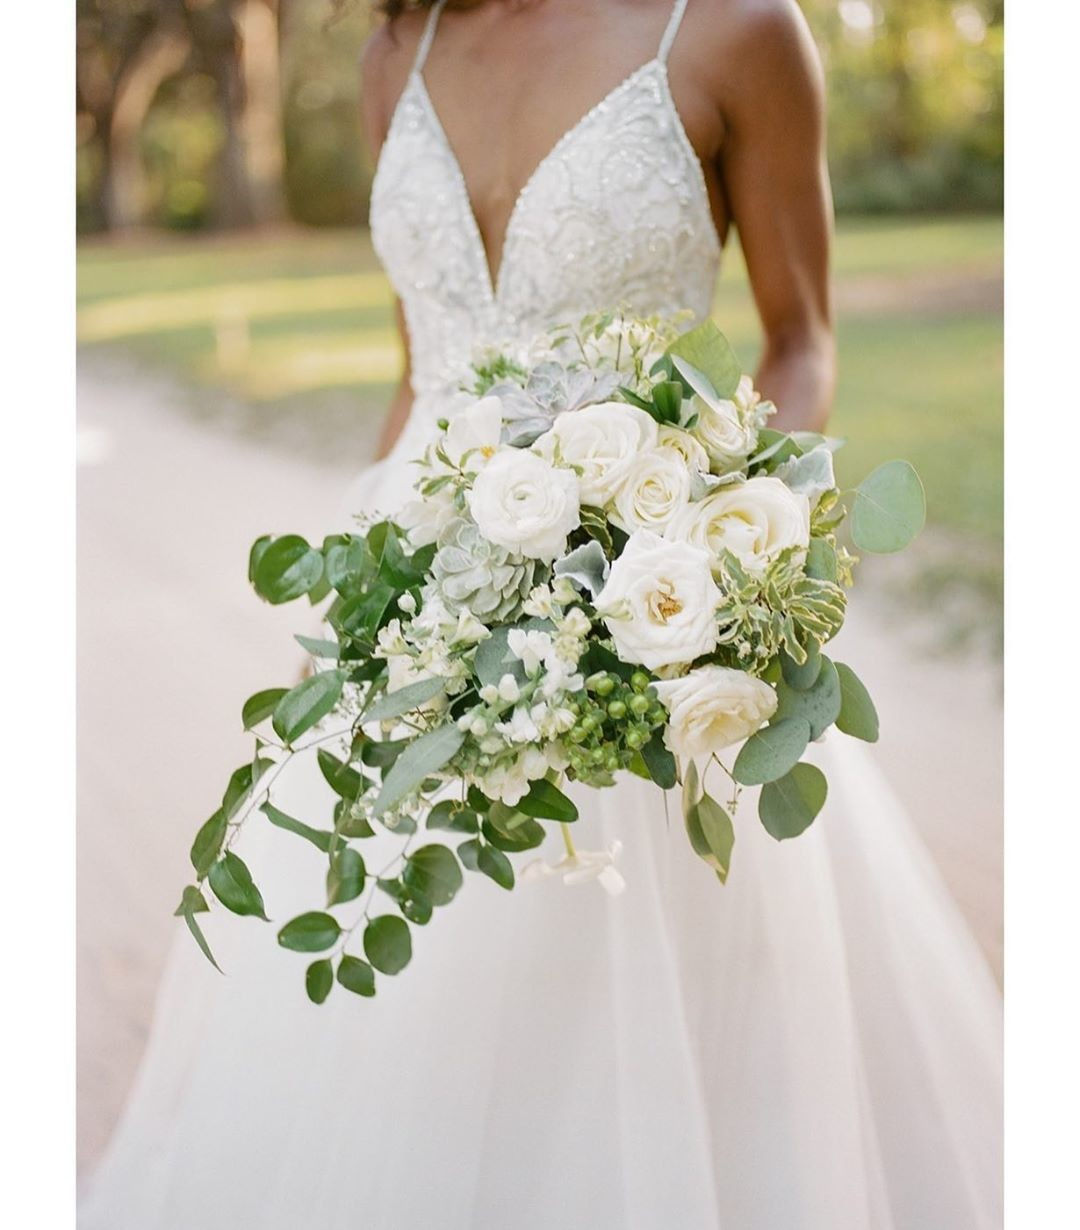 Bridal bouquet inspiration. Love the pairing of succulents and roses!